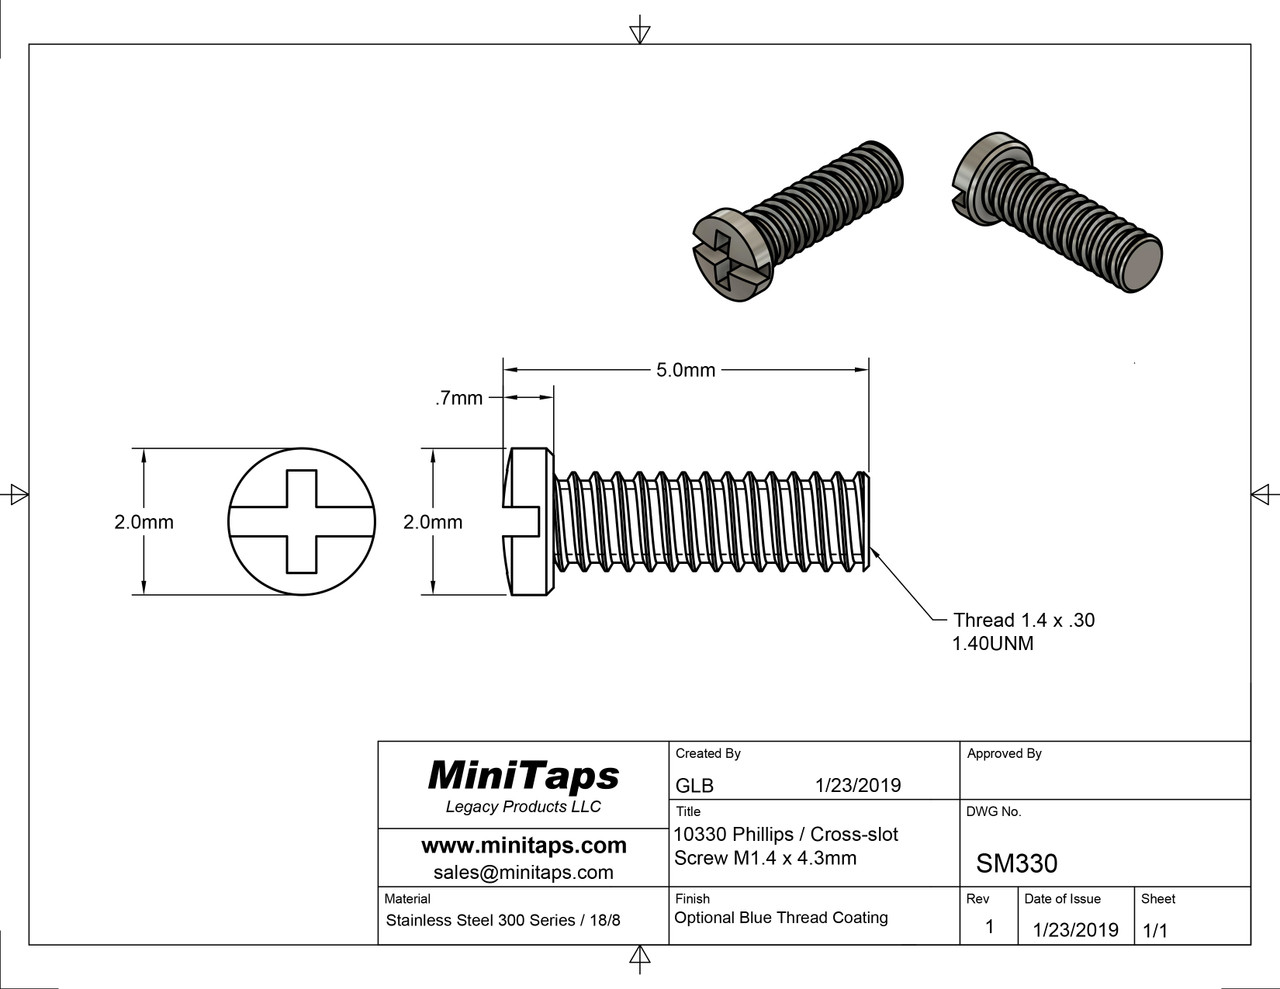 """Machine Screw Pan Head with Philips X-Slot Drive  Thread M1.4, Pitch .30mm, Threaded Length 4.3mm, Overall Length 5.0mm, Head 2.0mm  Stainless Steel  This item is available in three variations 1) Bare stainless steel, 2) Stainless Steel dyed """"Black"""" and 3) stainless steel with coated thread. If not specified we send the screws with coated thread.  Price is for 100 count package with bulk pricing available.  Please contact sales@minitaps.com for any additional questions or information."""